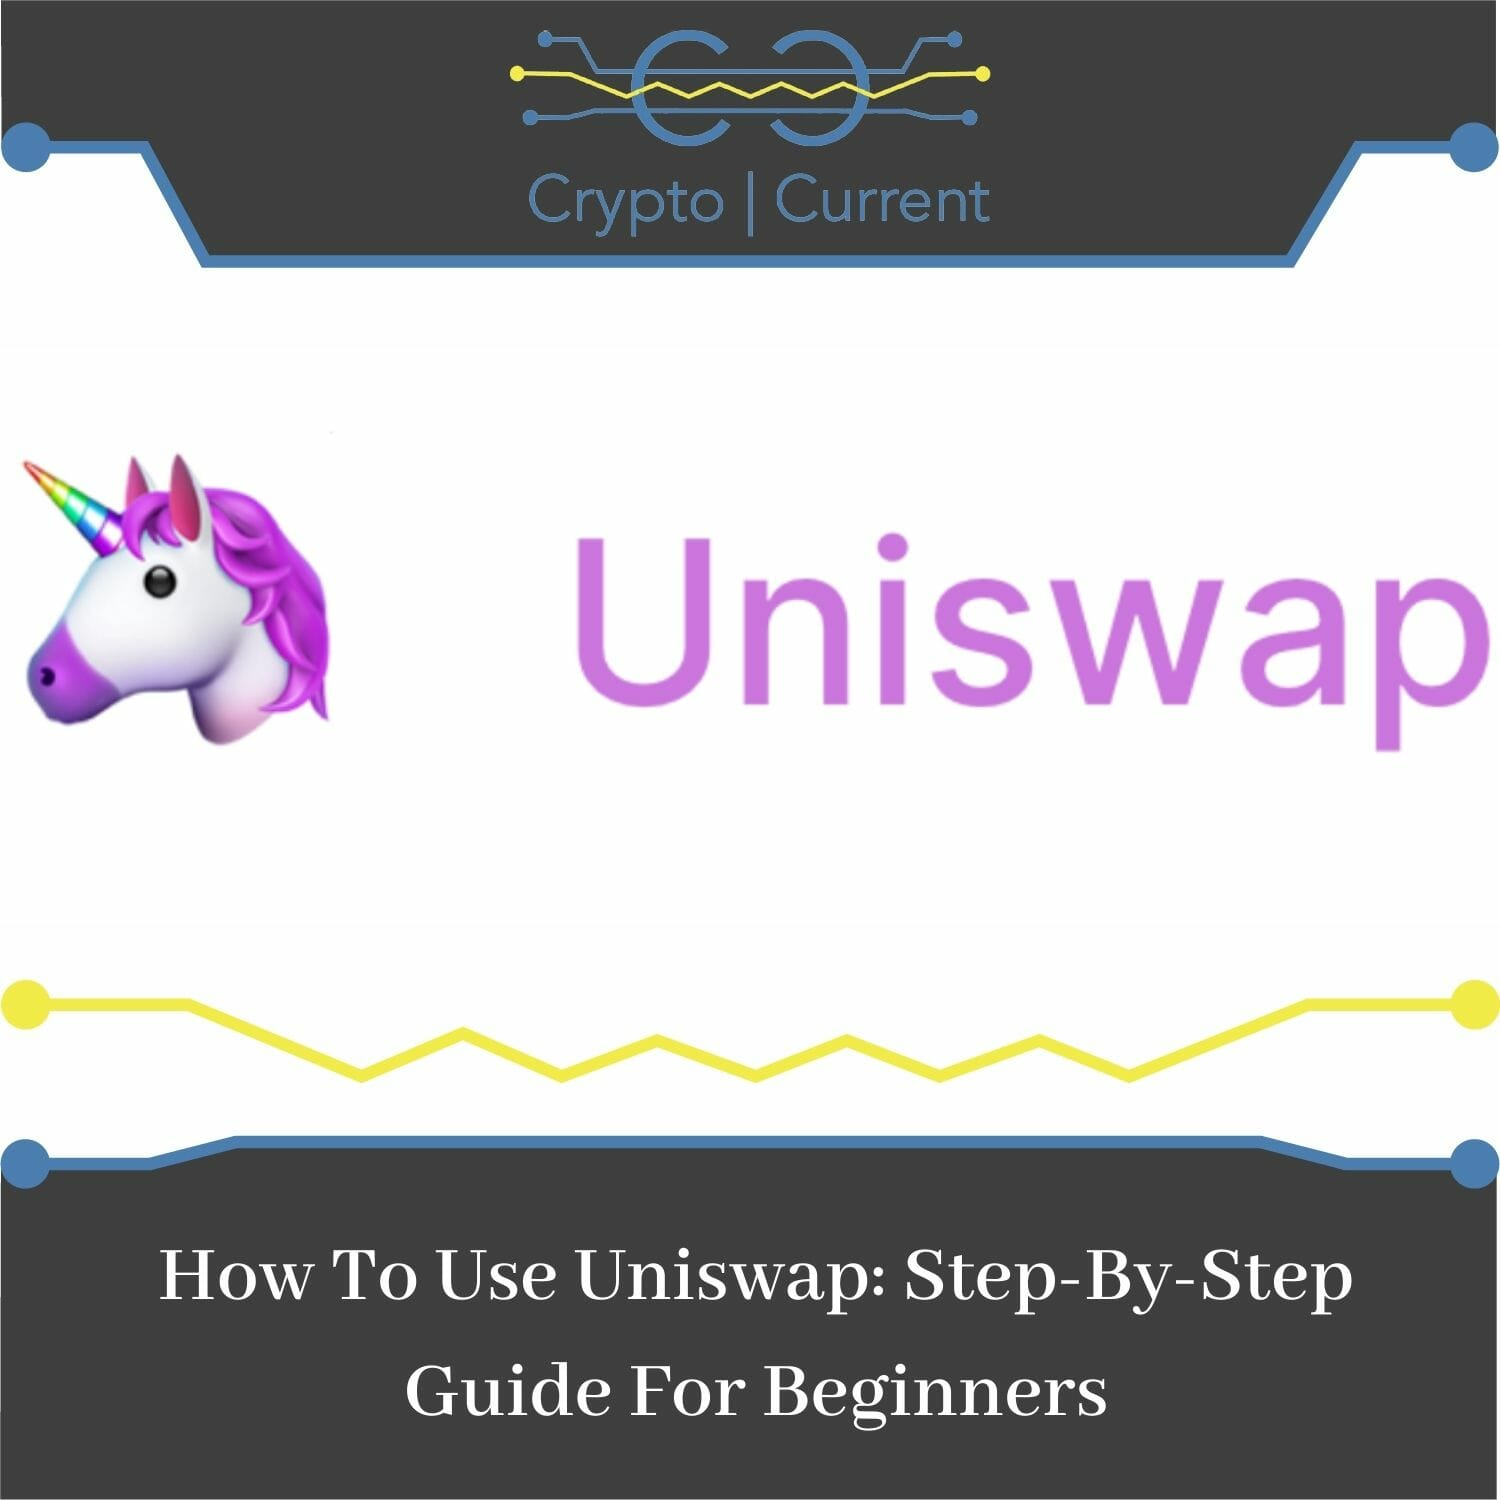 How To Use Uniswap: Step-By-Step Guide For Beginners